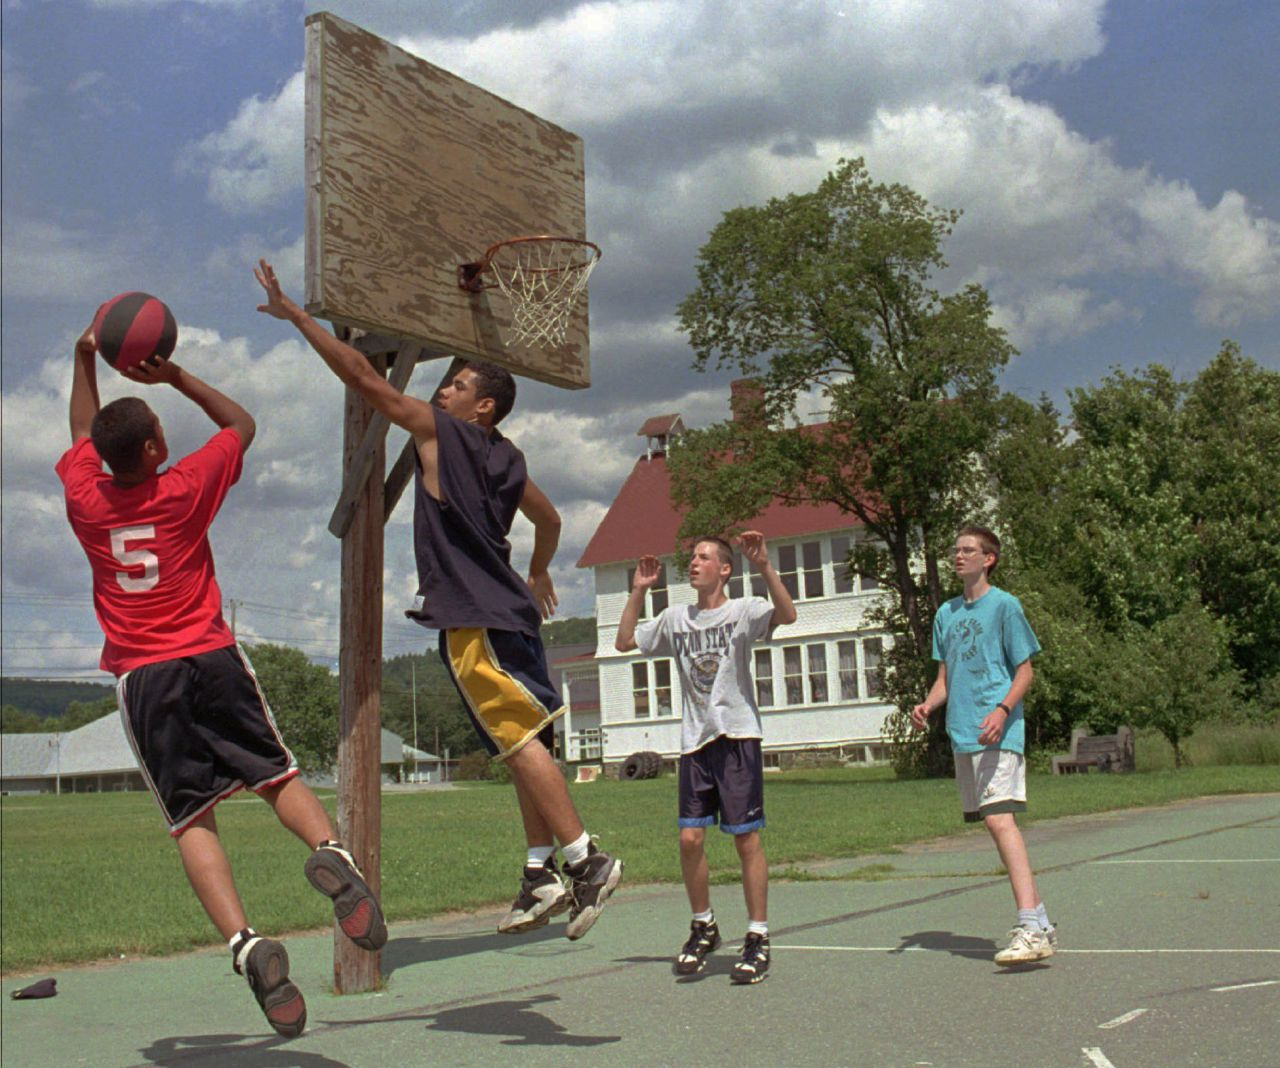 Gonzalo Ortiz, left, 16, shoots a basketball as his brother Joe Ortiz, 17, both of Brooklyn, N.Y., defends while playing in Worcester, Vt., with their Fresh Air Fund host Matt Meninger, 15, far right, and friend Patrick Harriman, 15, of East Montpelier, Vt., Friday, July 12, 1996.  Gonzalo Ortiz has been coming to Vermont through the program each summer since he was four-years-old. (Craig Line/AP)